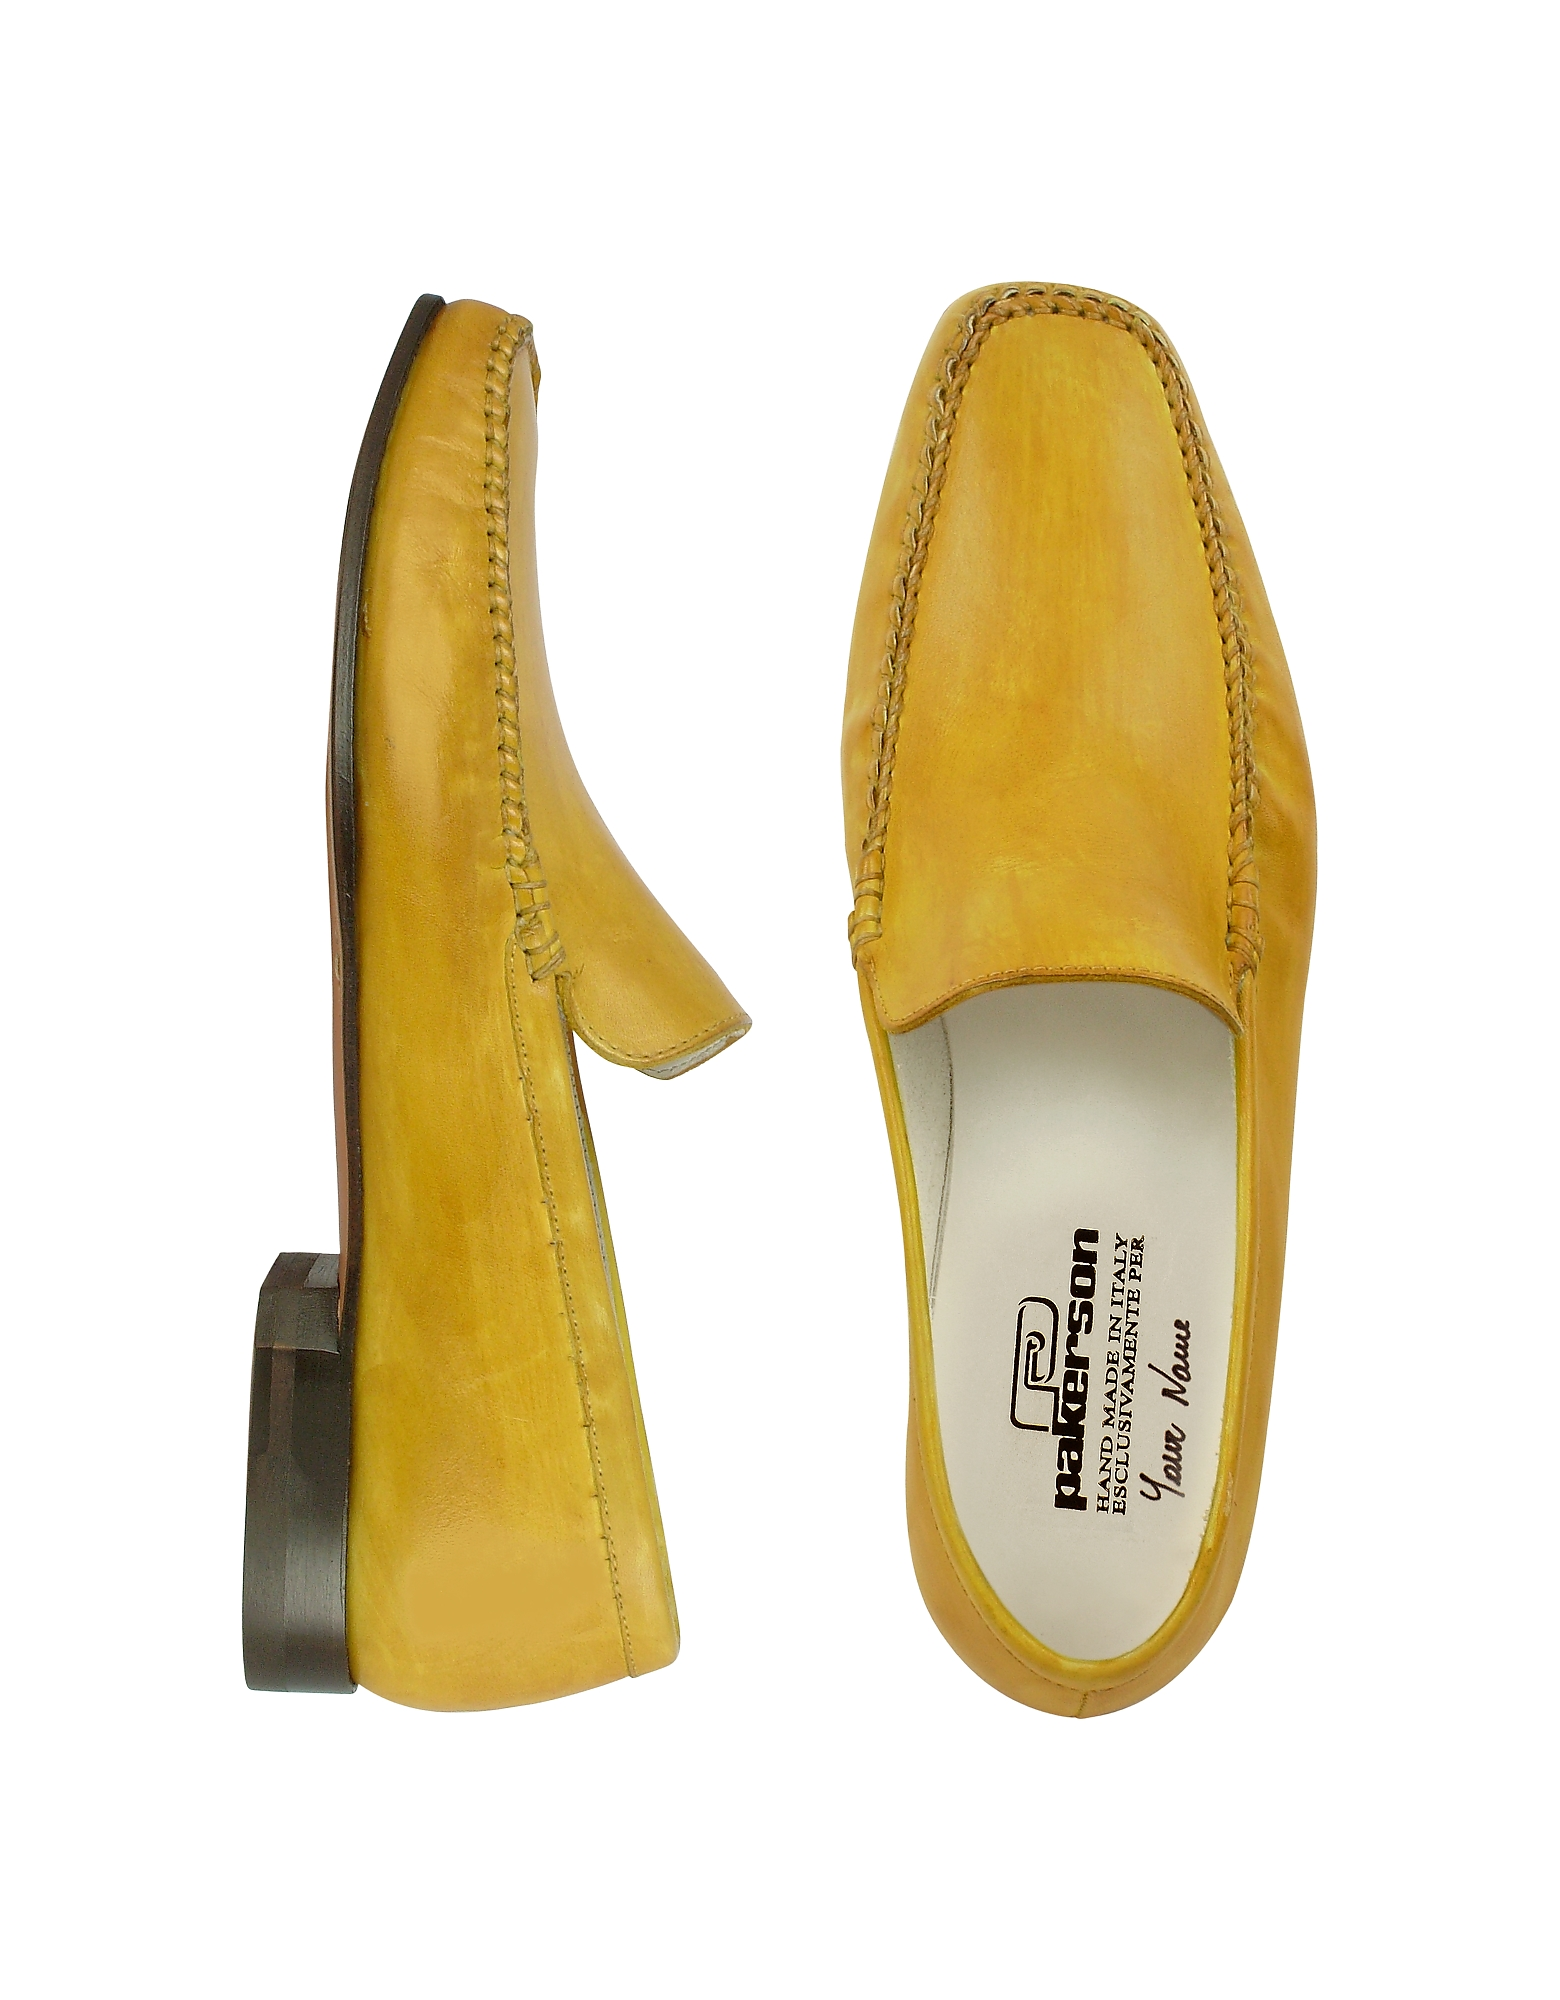 Yellow Italian Handmade Leather Loafer Shoes